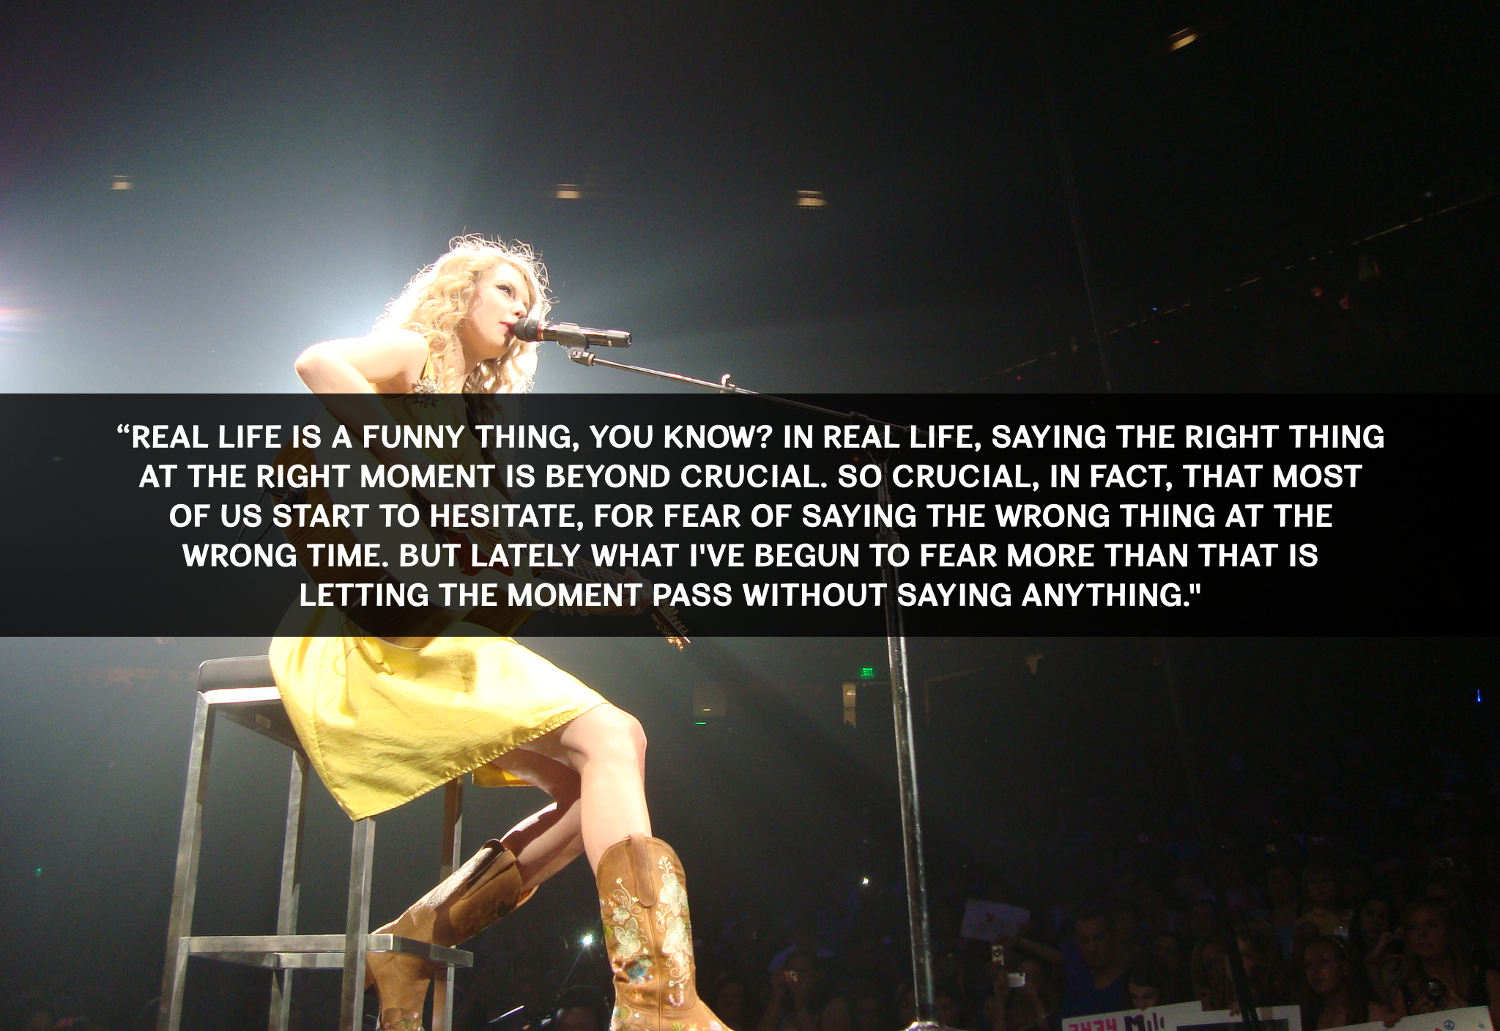 Inspirational Quotes Motivation: 10 Inspirational Taylor Swift Quotes